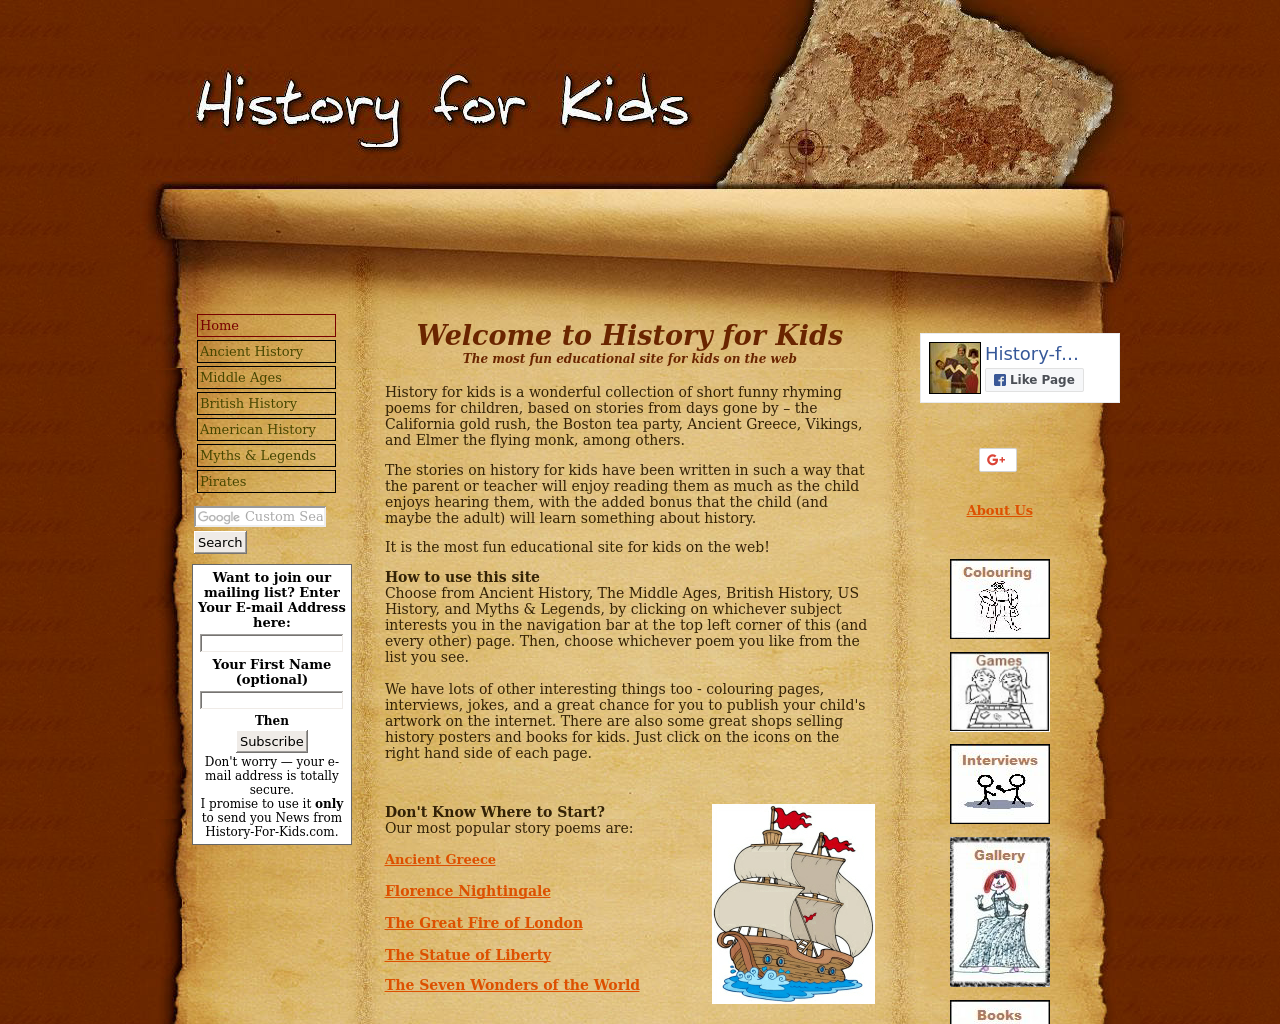 History-for-Kids-Advertising-Reviews-Pricing